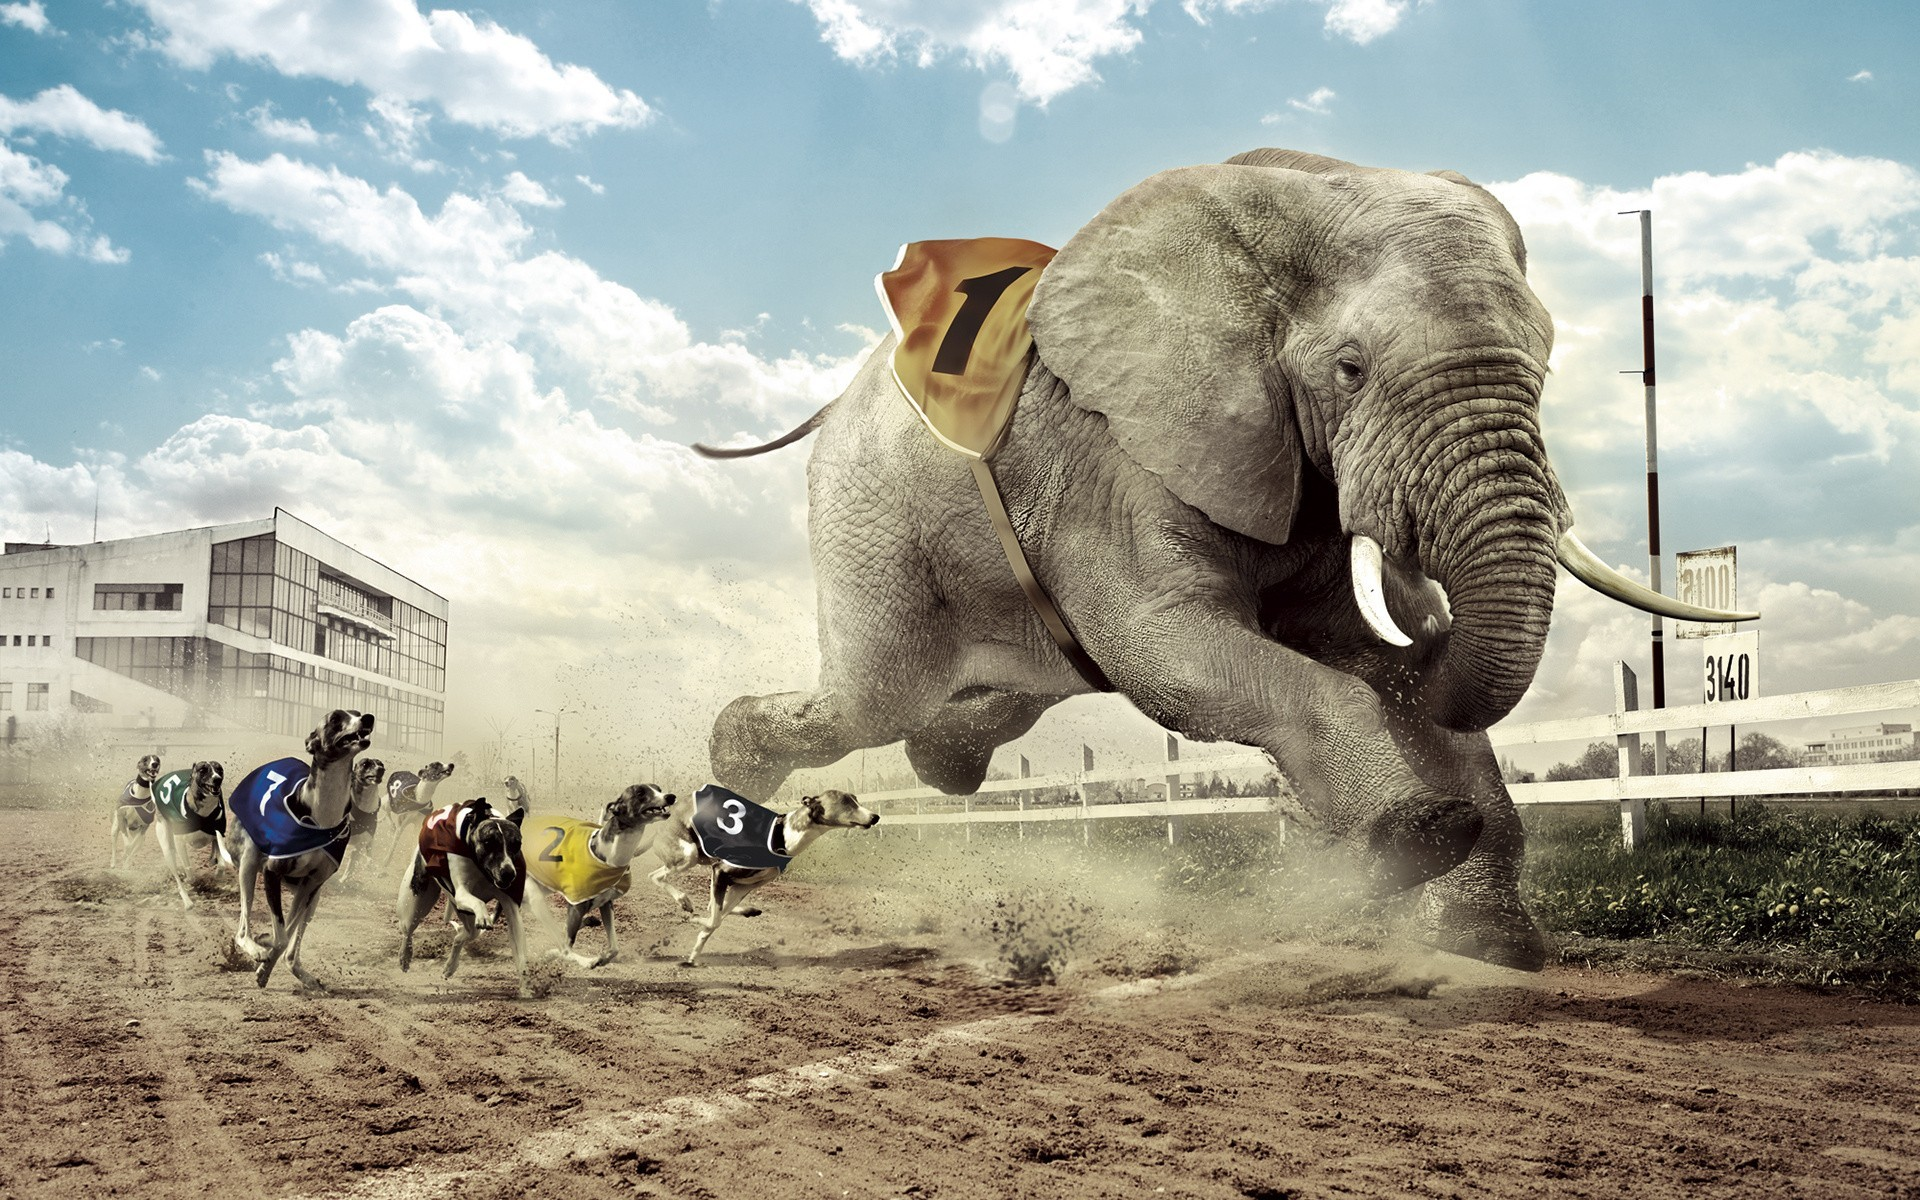 427 Elephant HD Wallpapers | Backgrounds - Wallpaper Abyss